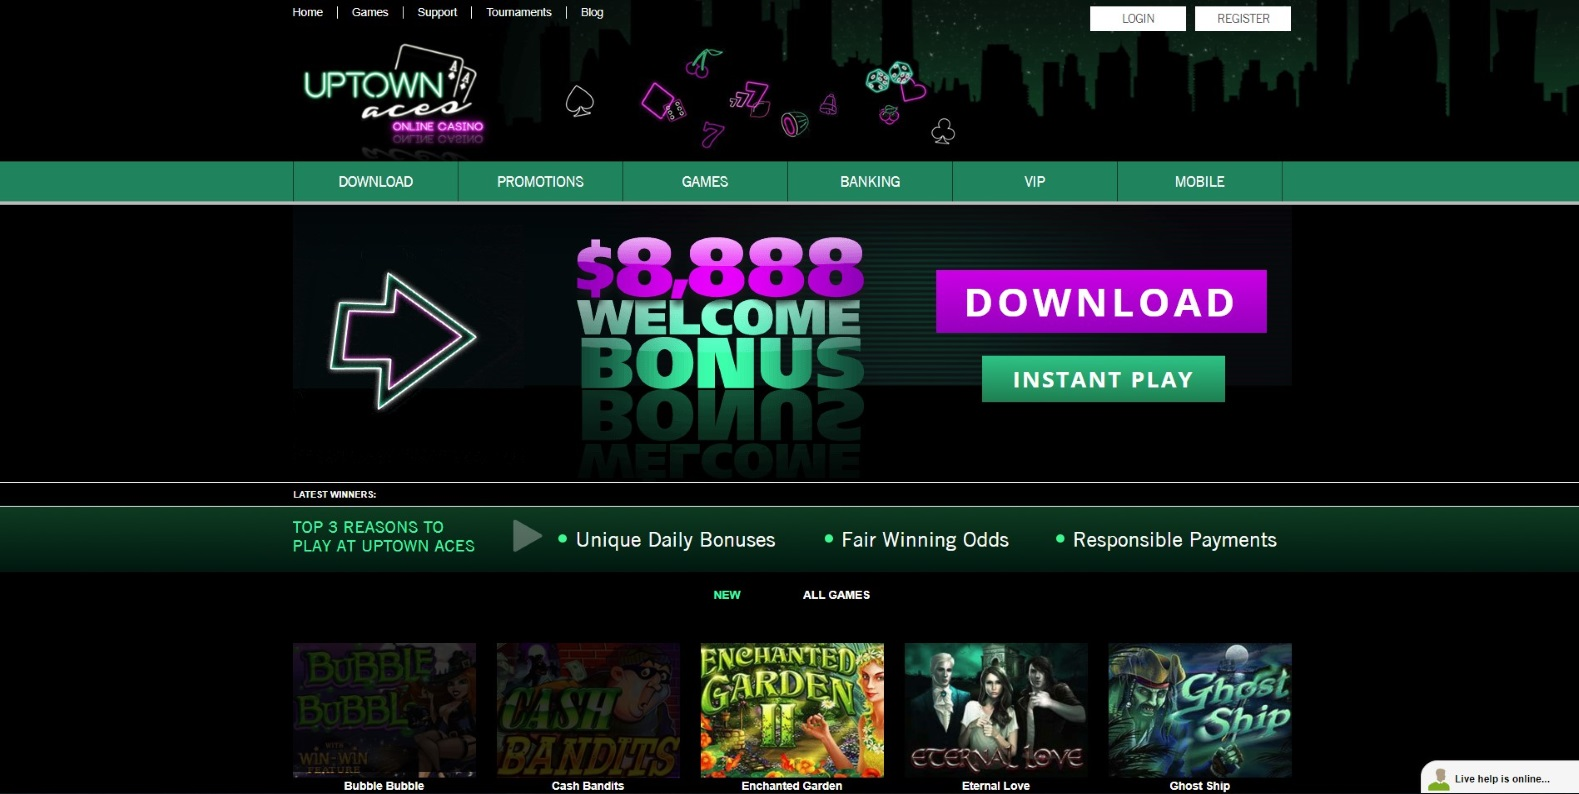 The home page of Uptown Aces casino